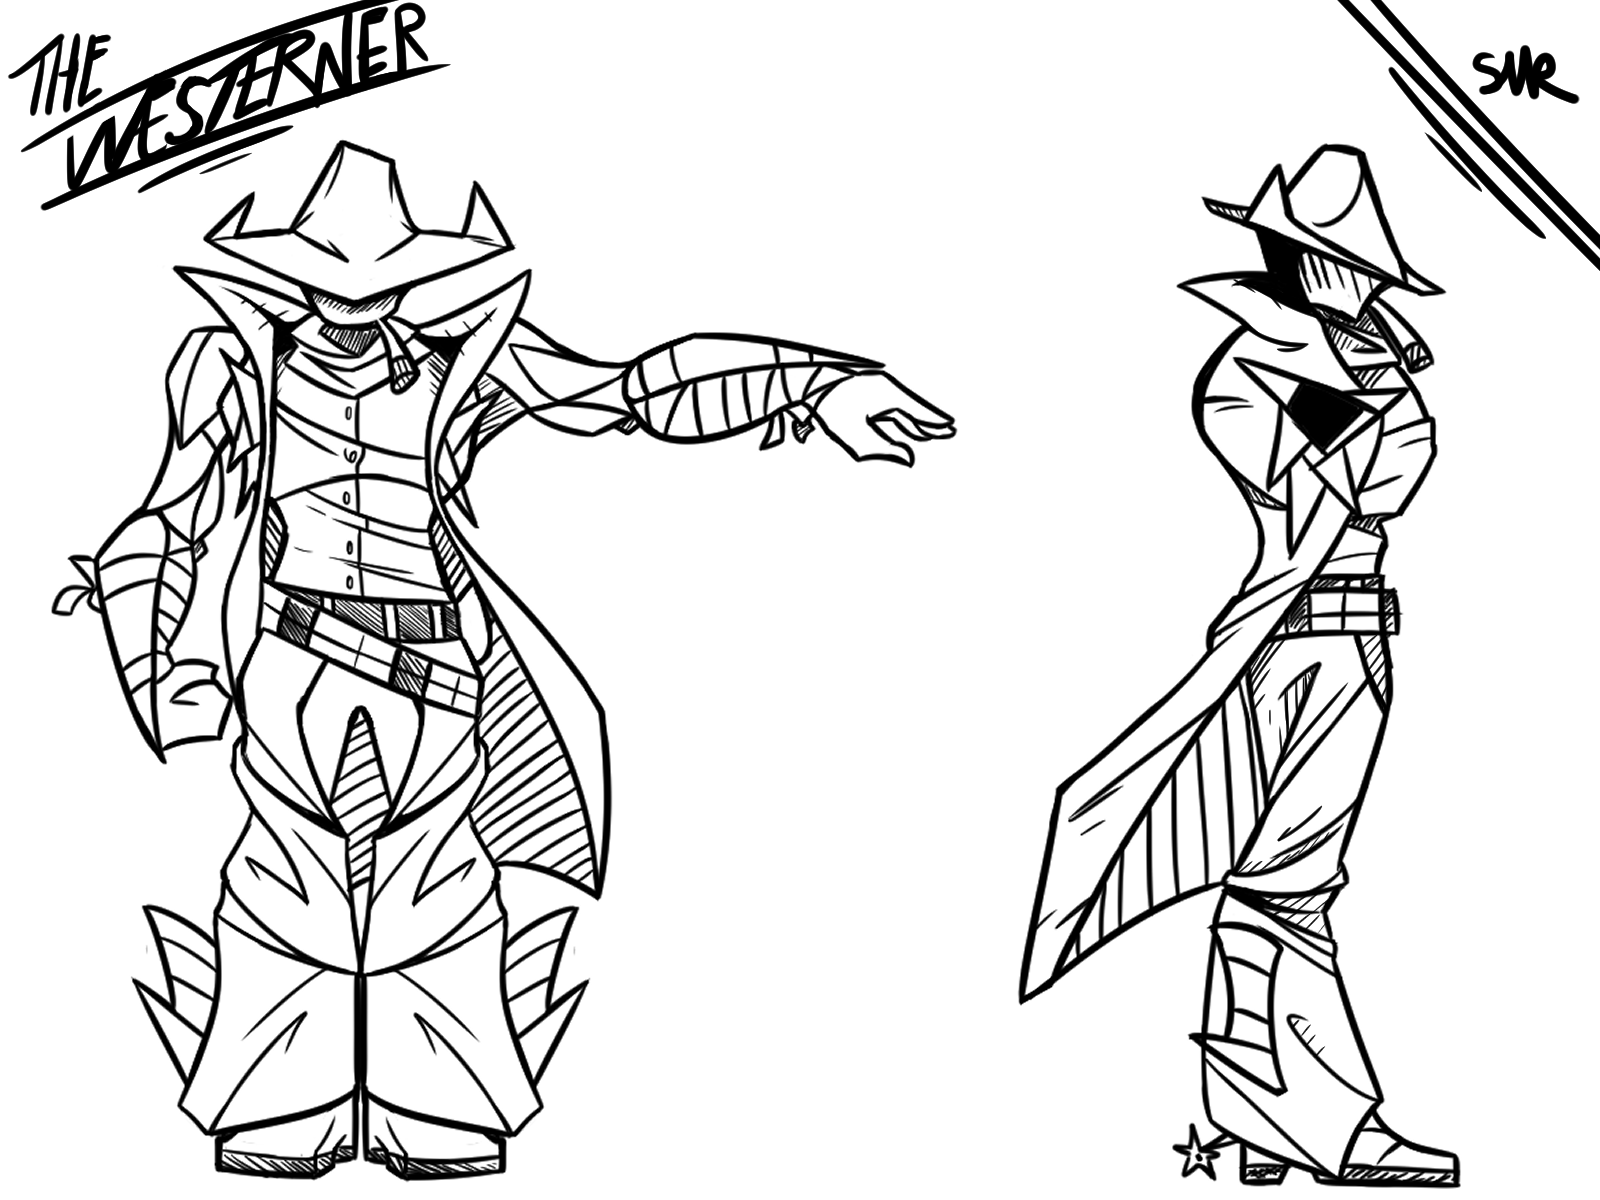 The Westerner - Character Design